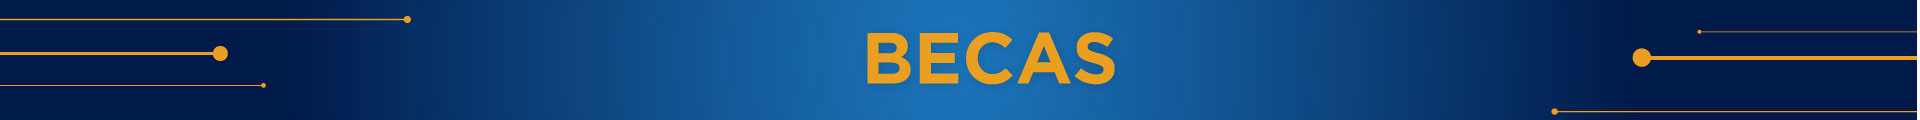 Banners_becas